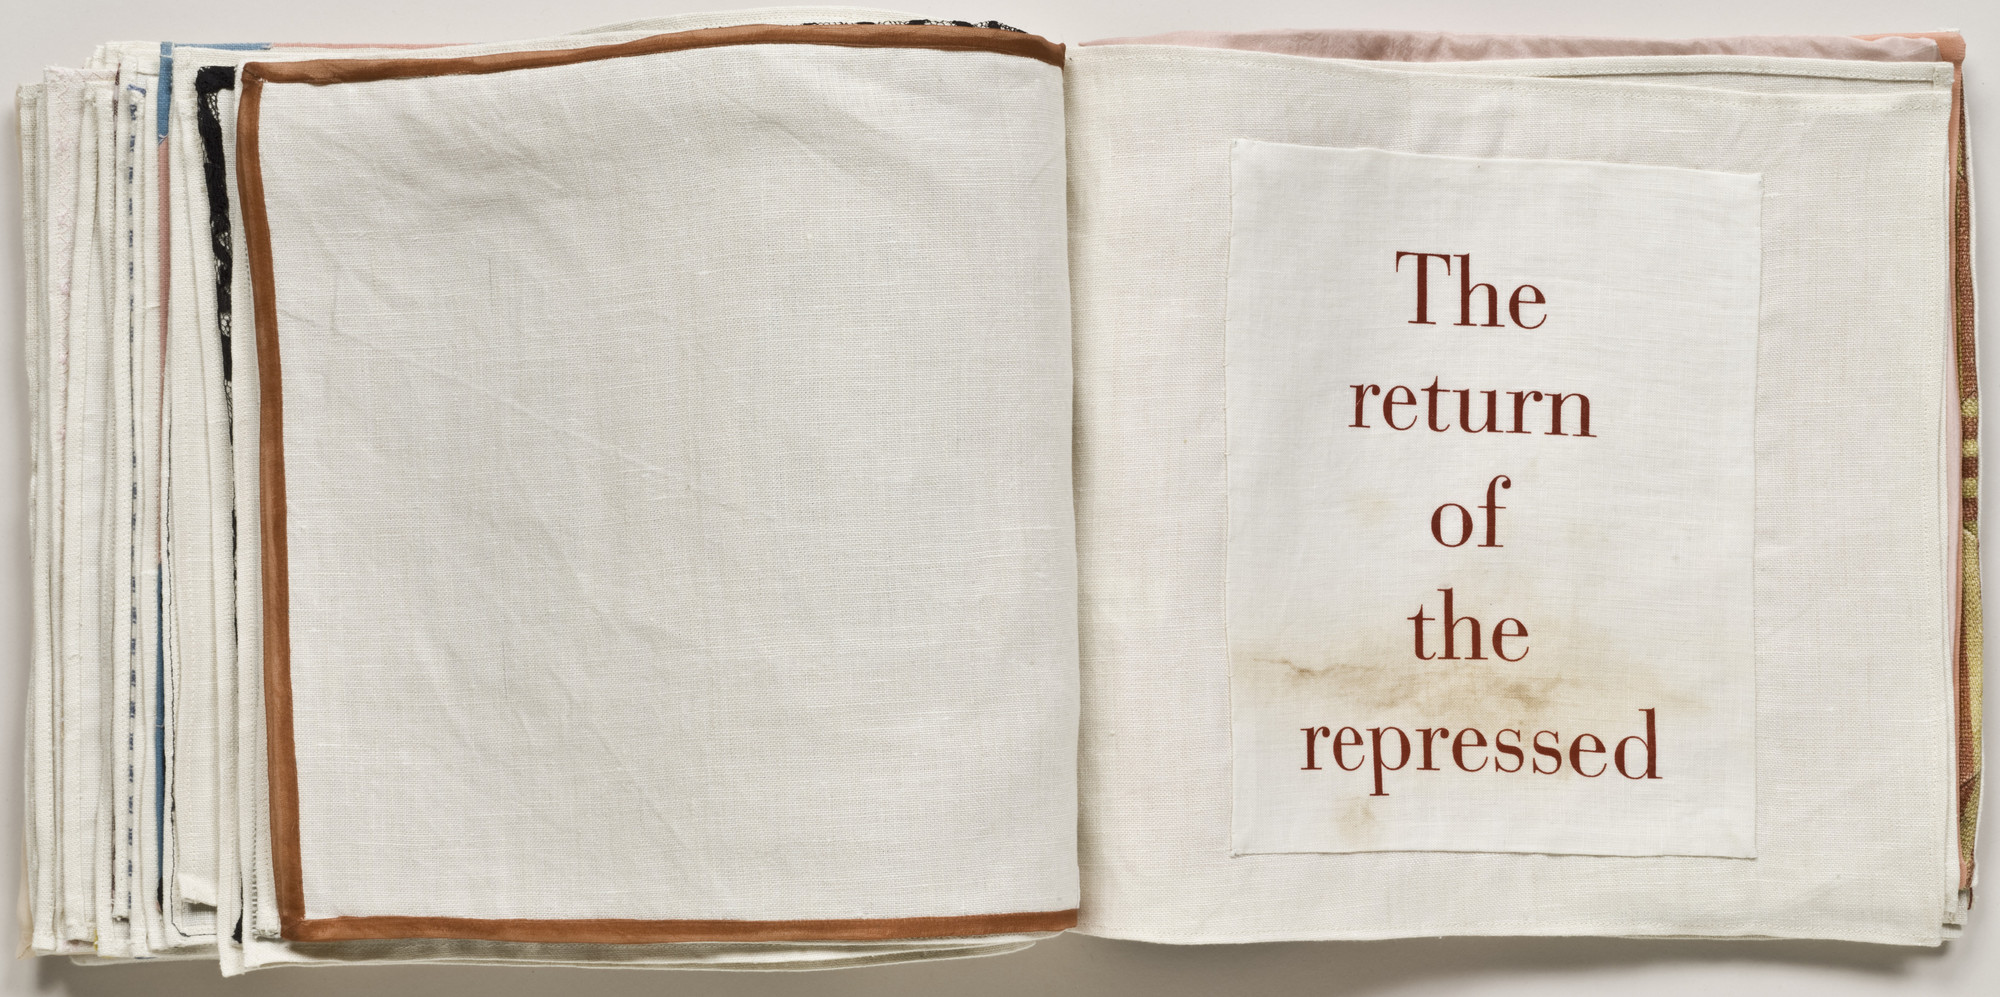 Louise Bourgeois. The Return of the Repressed, no. 28 of 34, from the illustrated book, Ode à l'Oubli. 2004